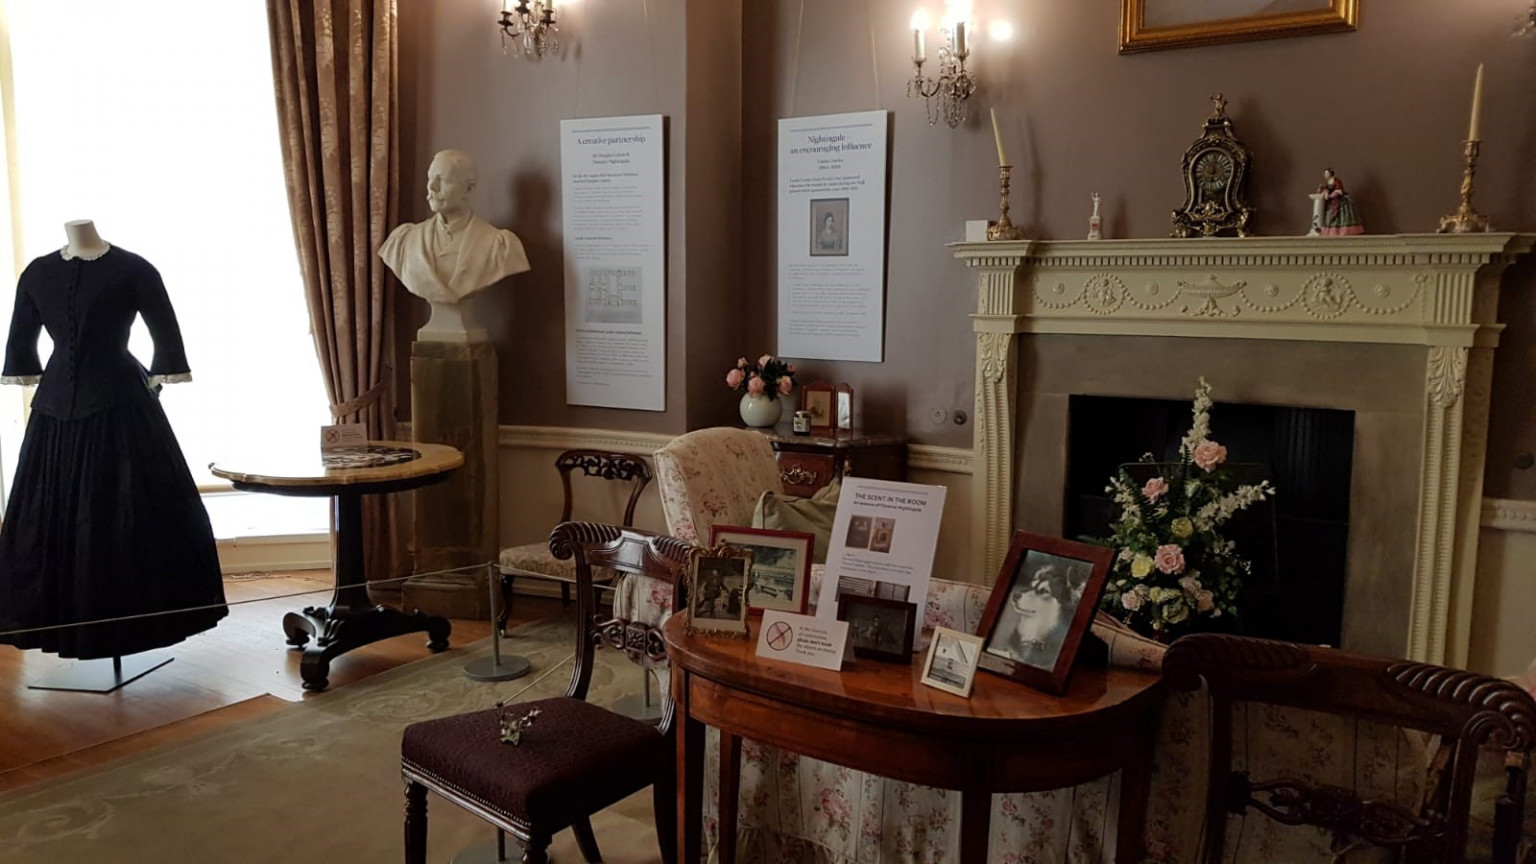 Florence Nightingale display in the boudoir at Lotherton.